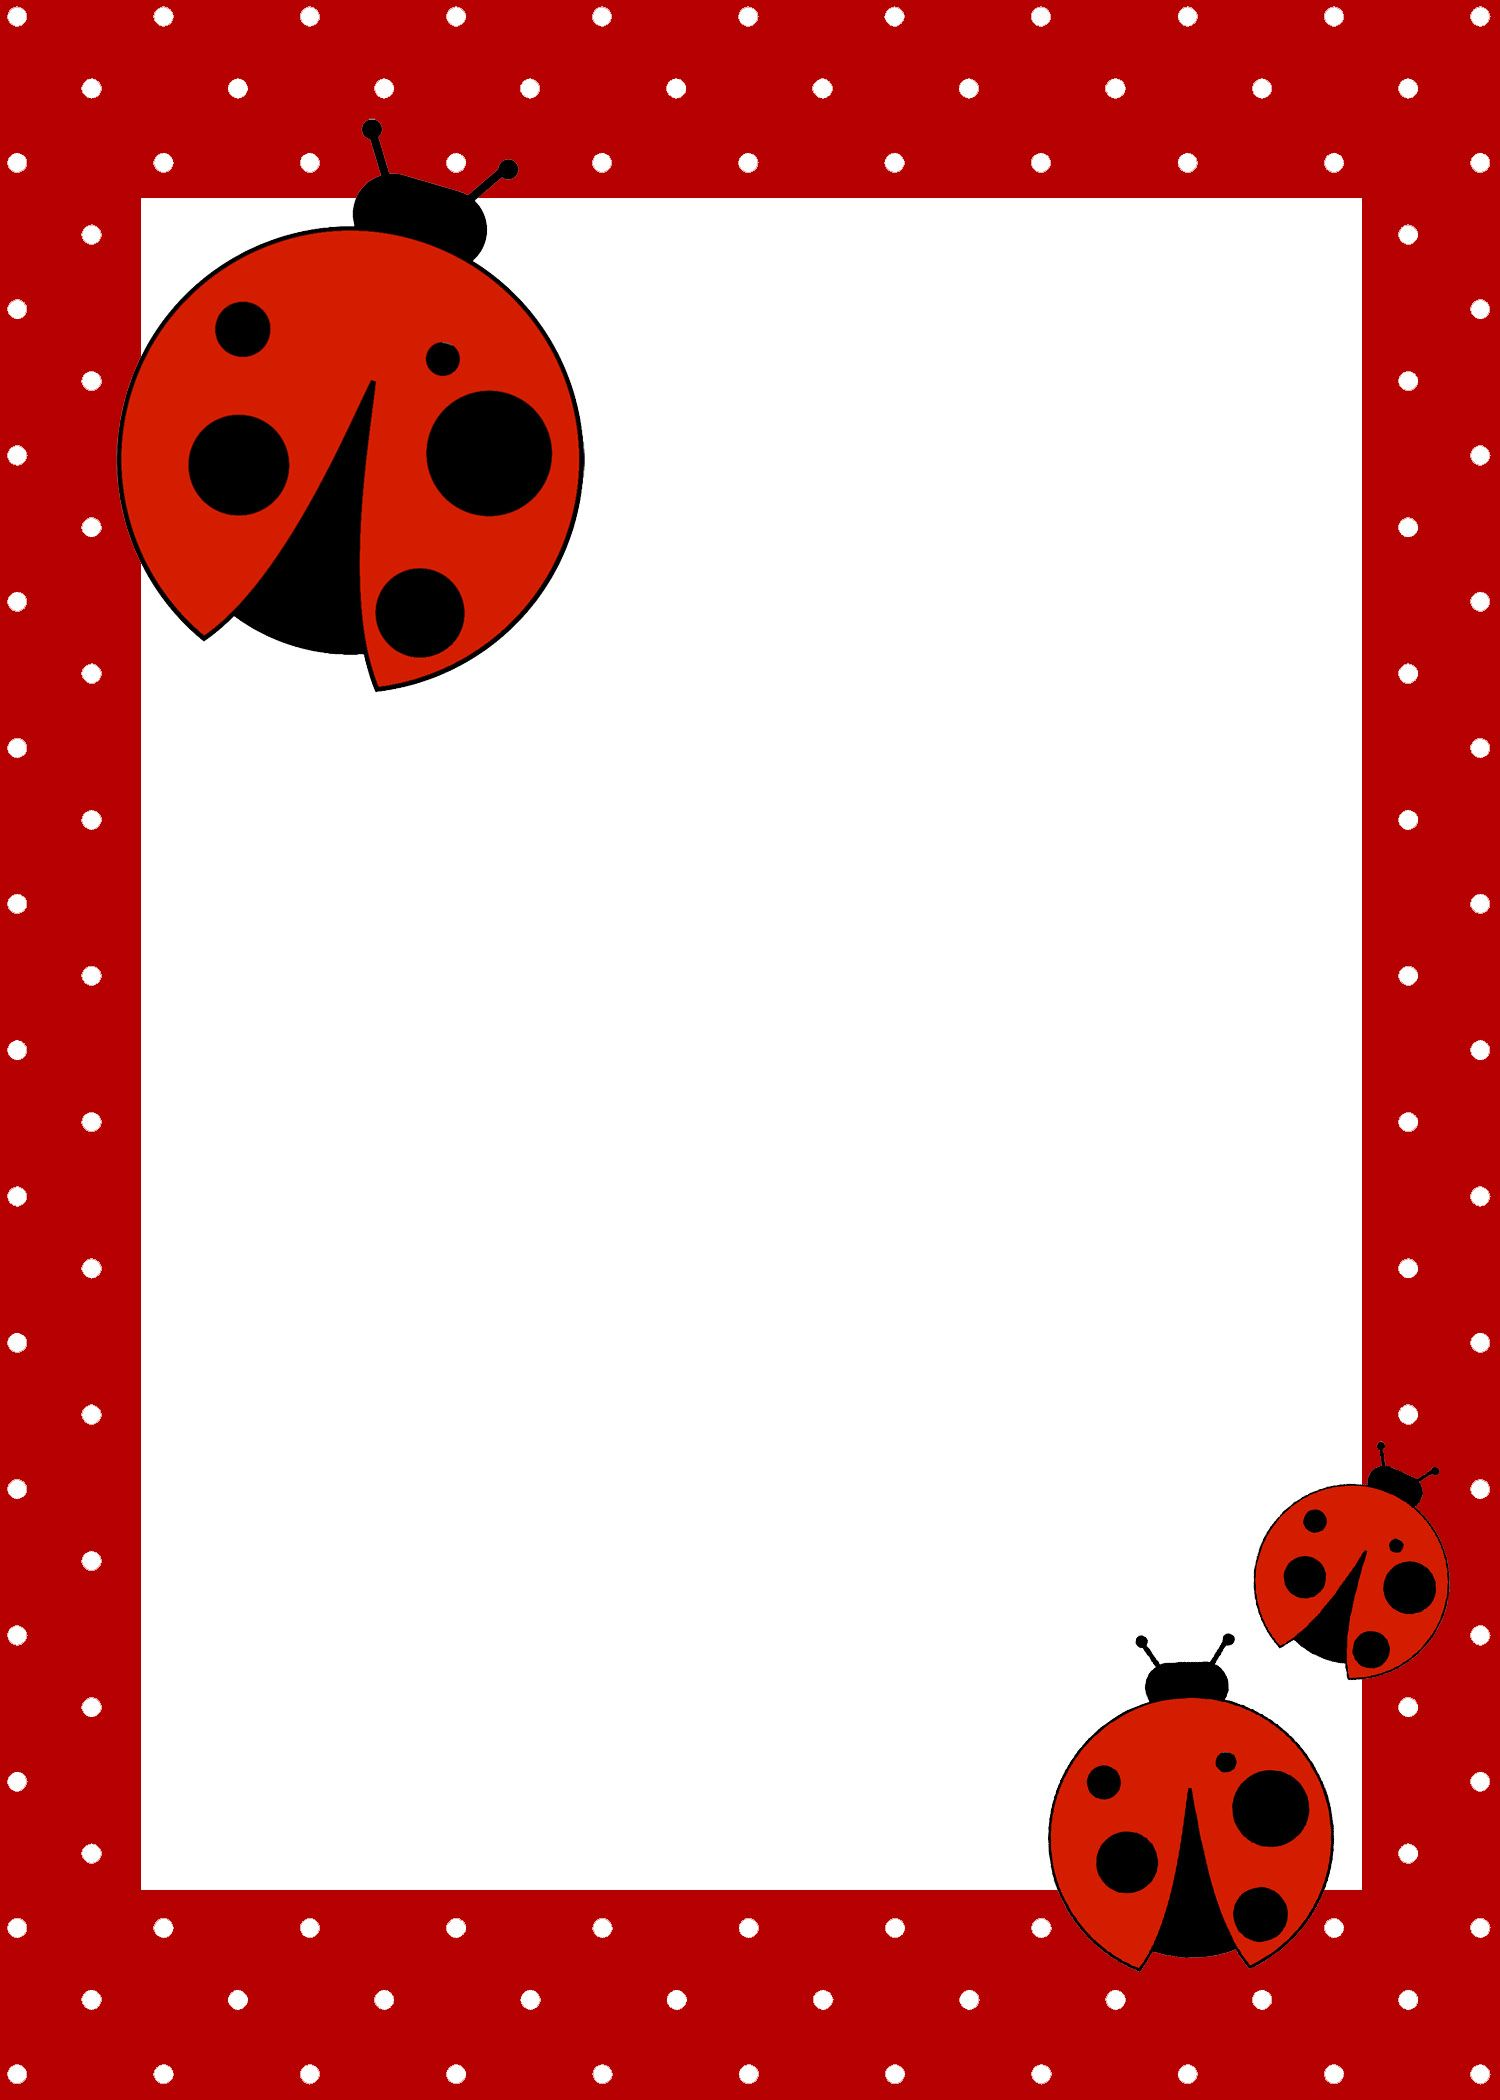 Ladybug Invitations 1St Birthday with good invitation design